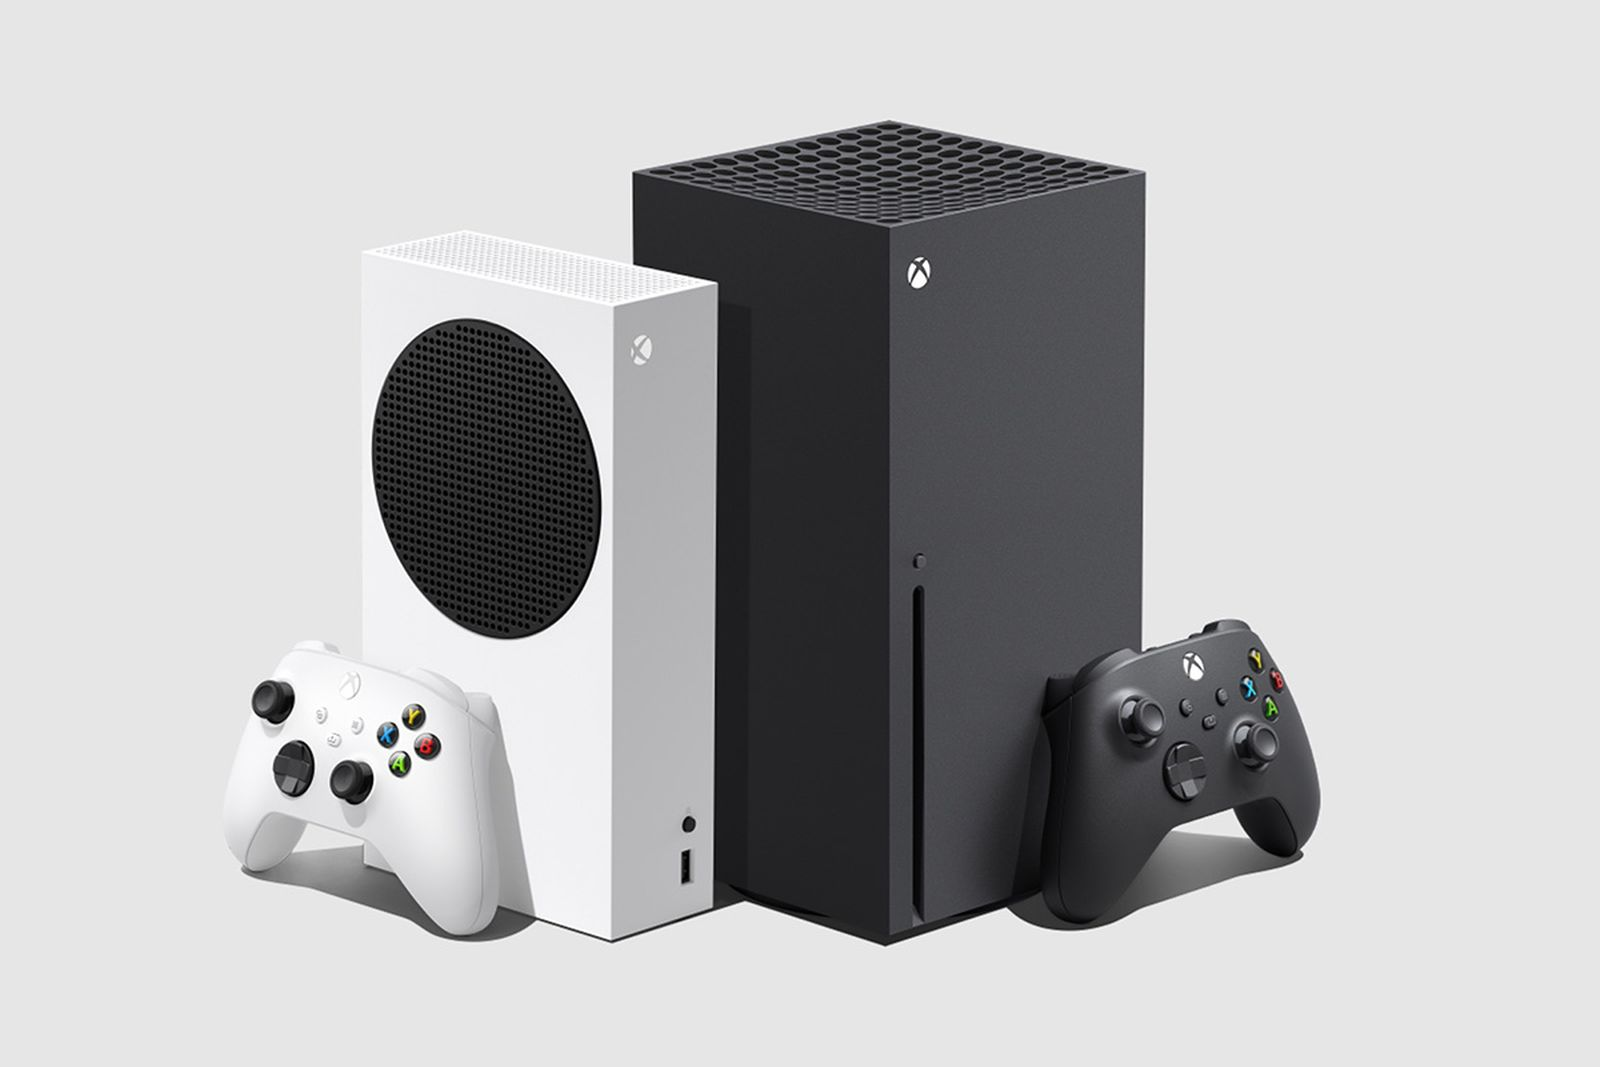 Xbox Series X preorders may arrive as late as Dec 31: Amazon